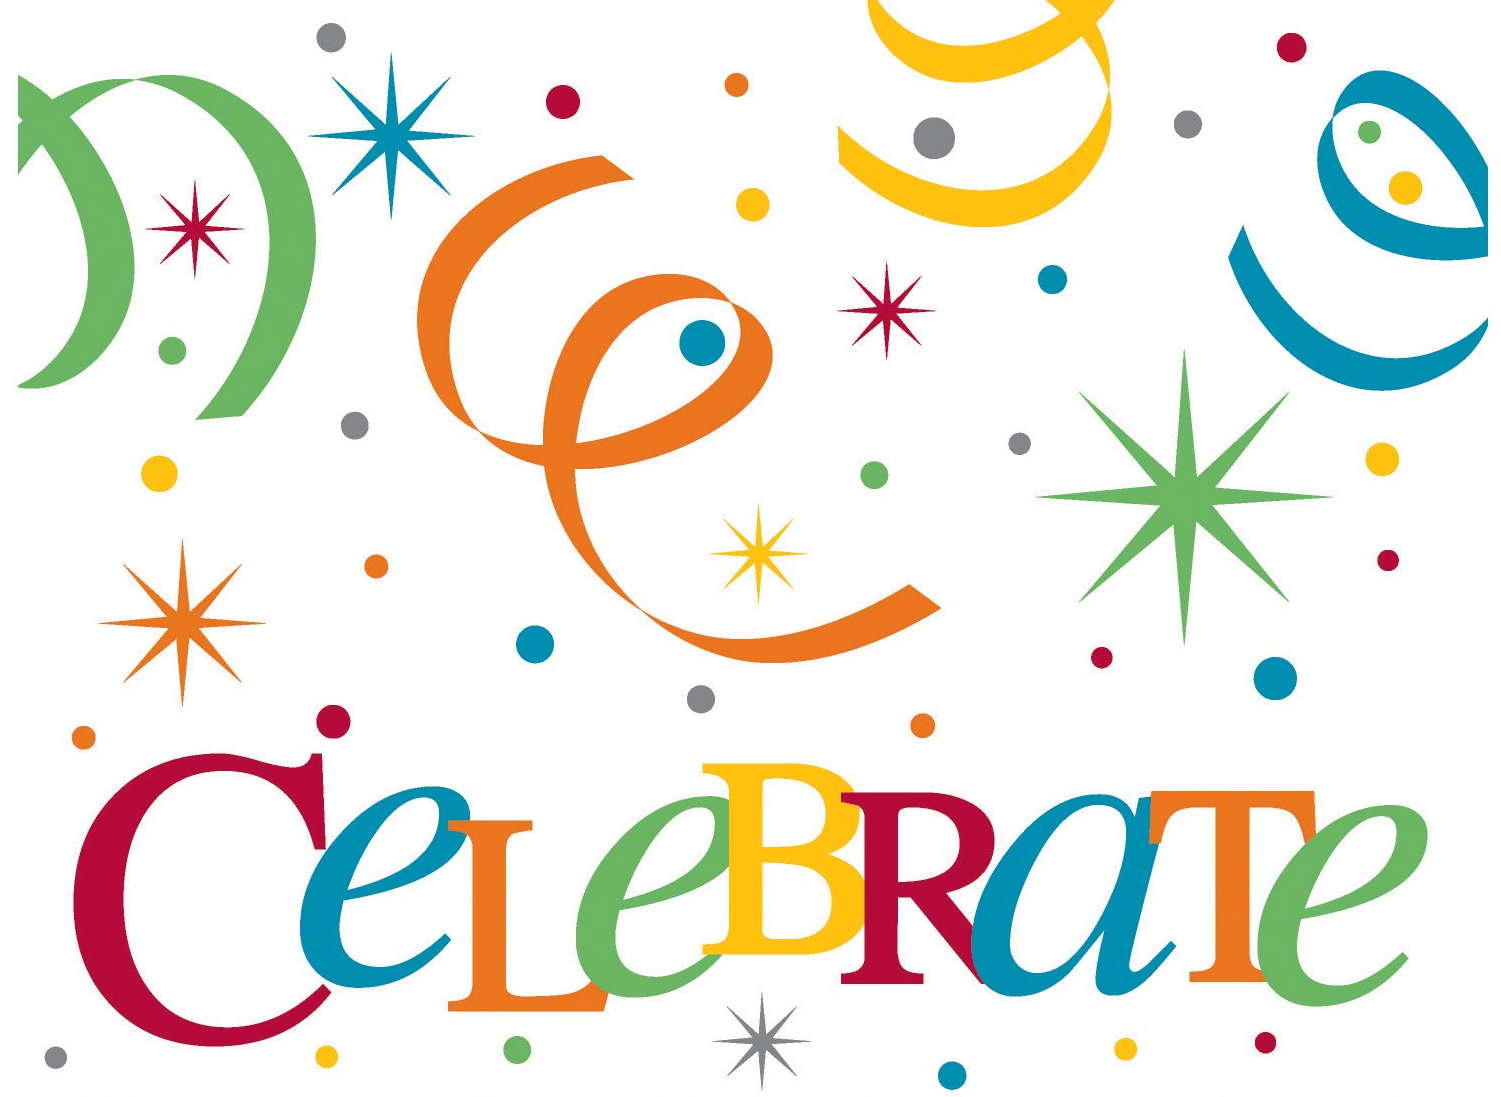 Celebrating clipart image royalty free Free Celebration Clip Art Pictures - Clipartix image royalty free